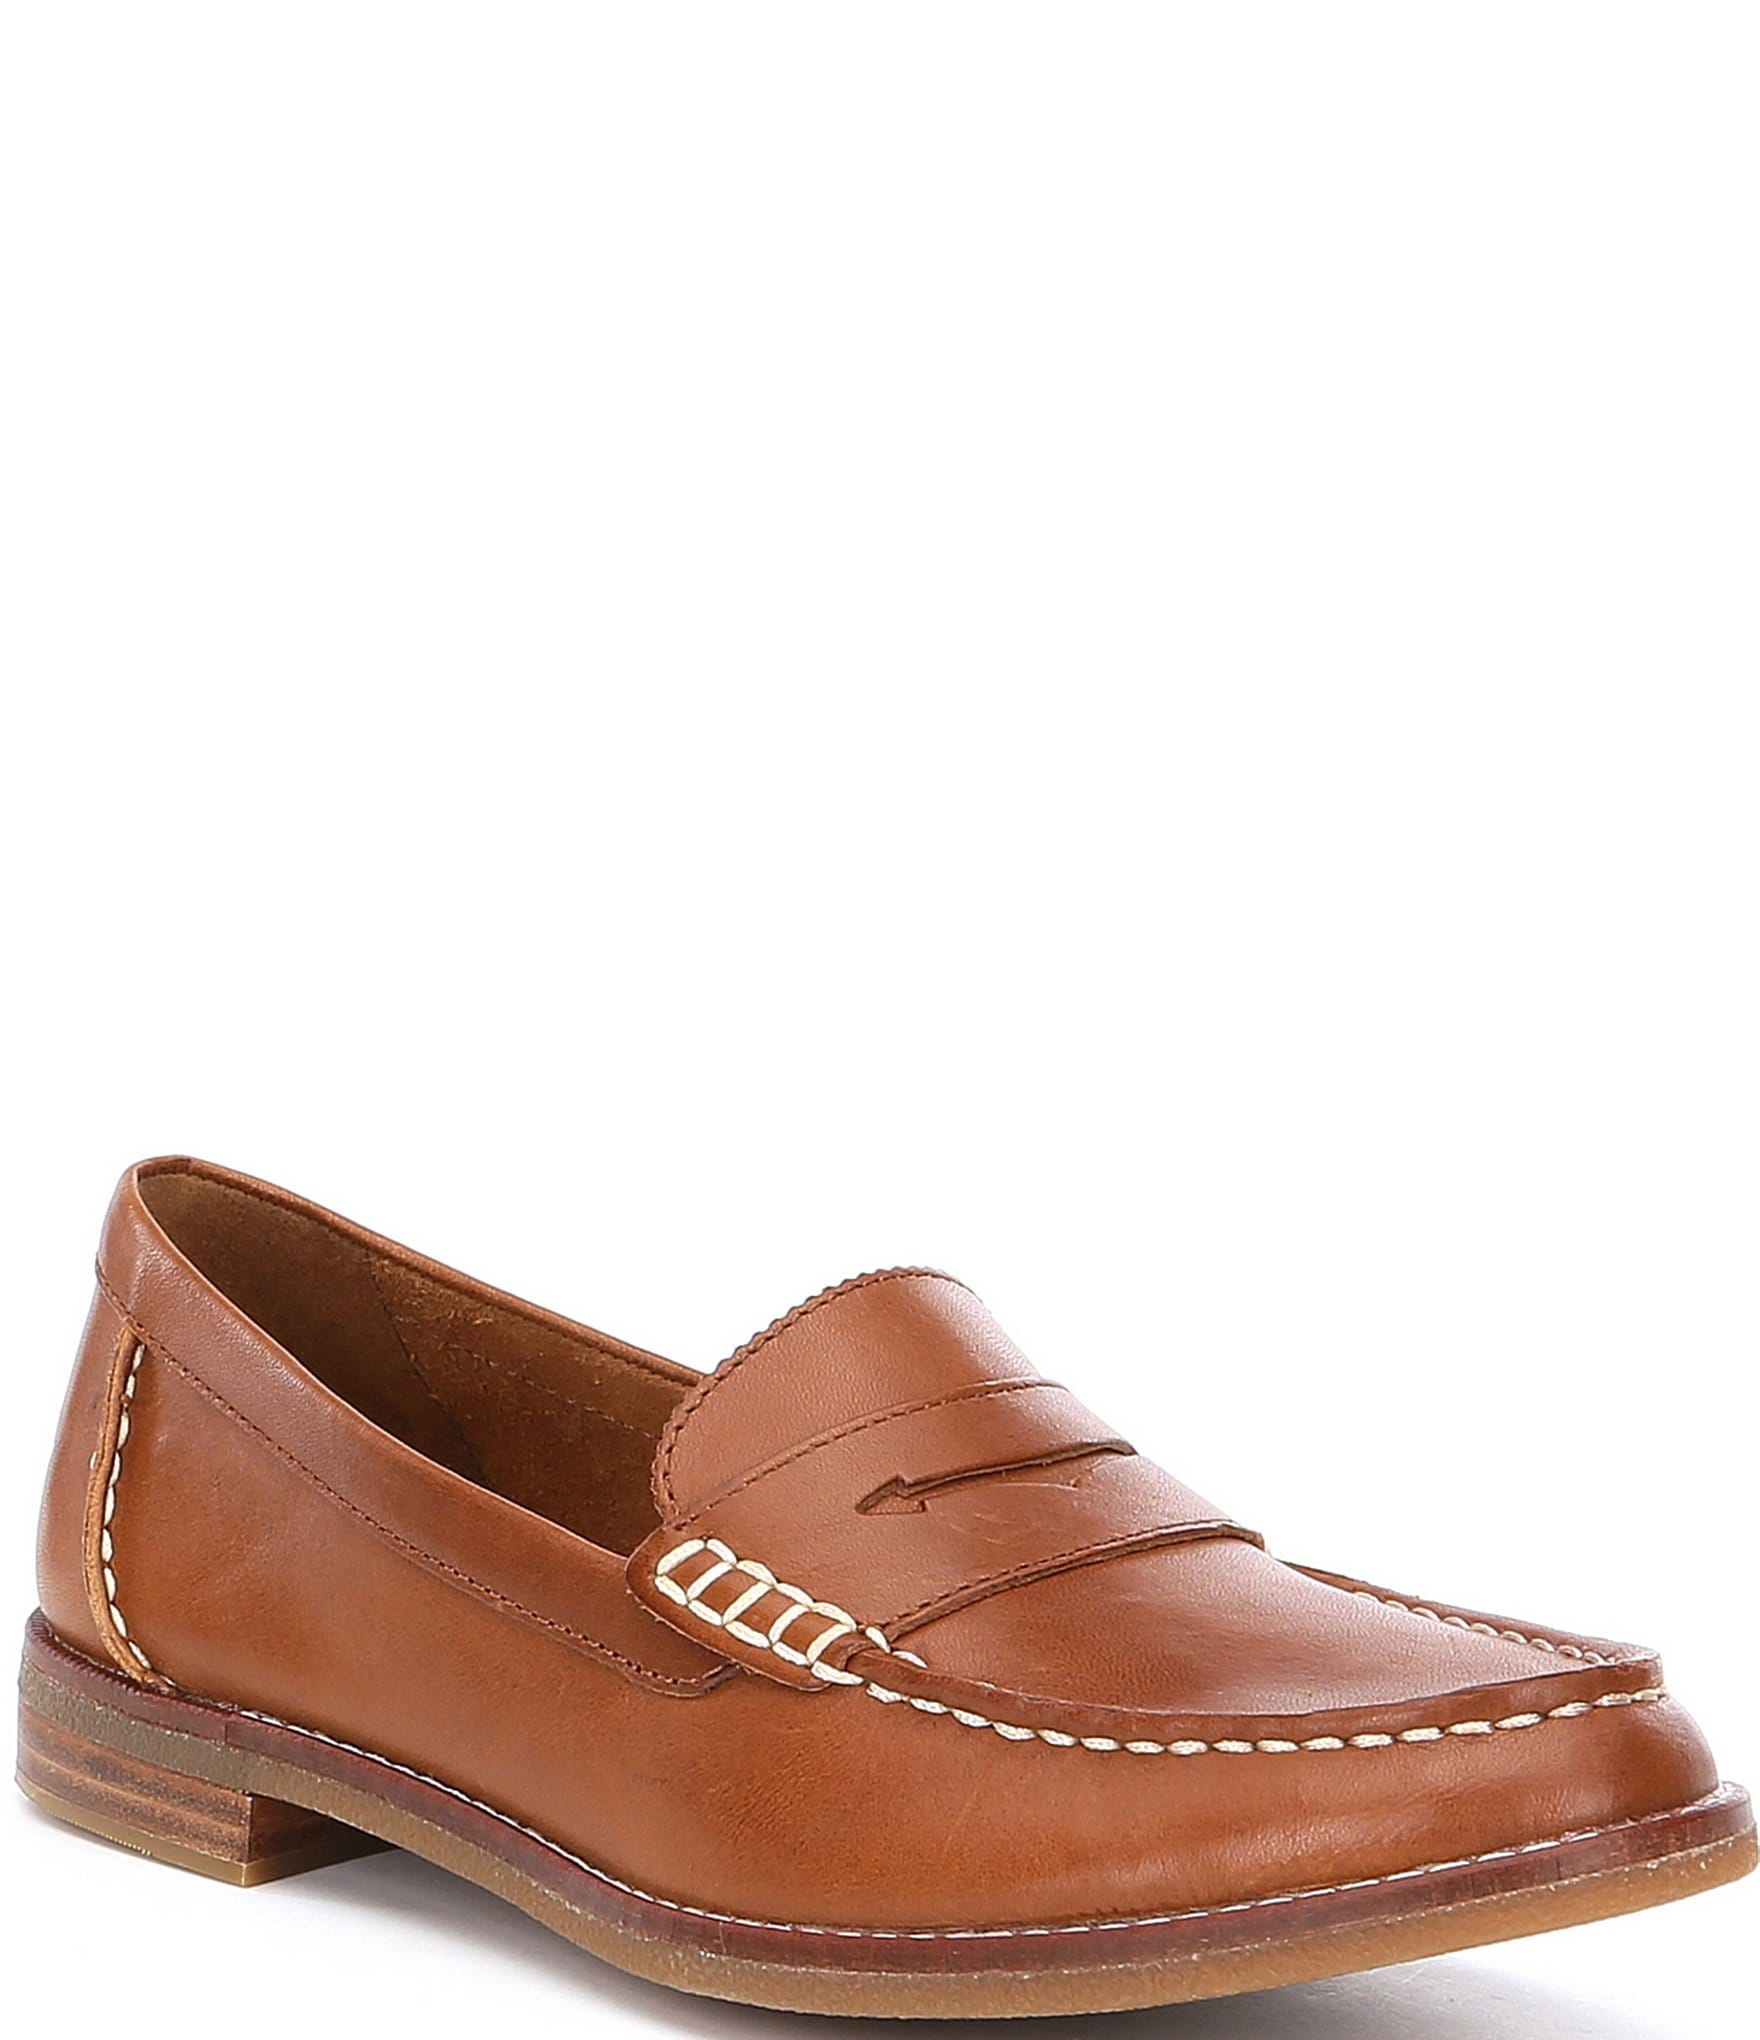 Sperry Women's Seaport Leather Penny Loafers | Dillard's